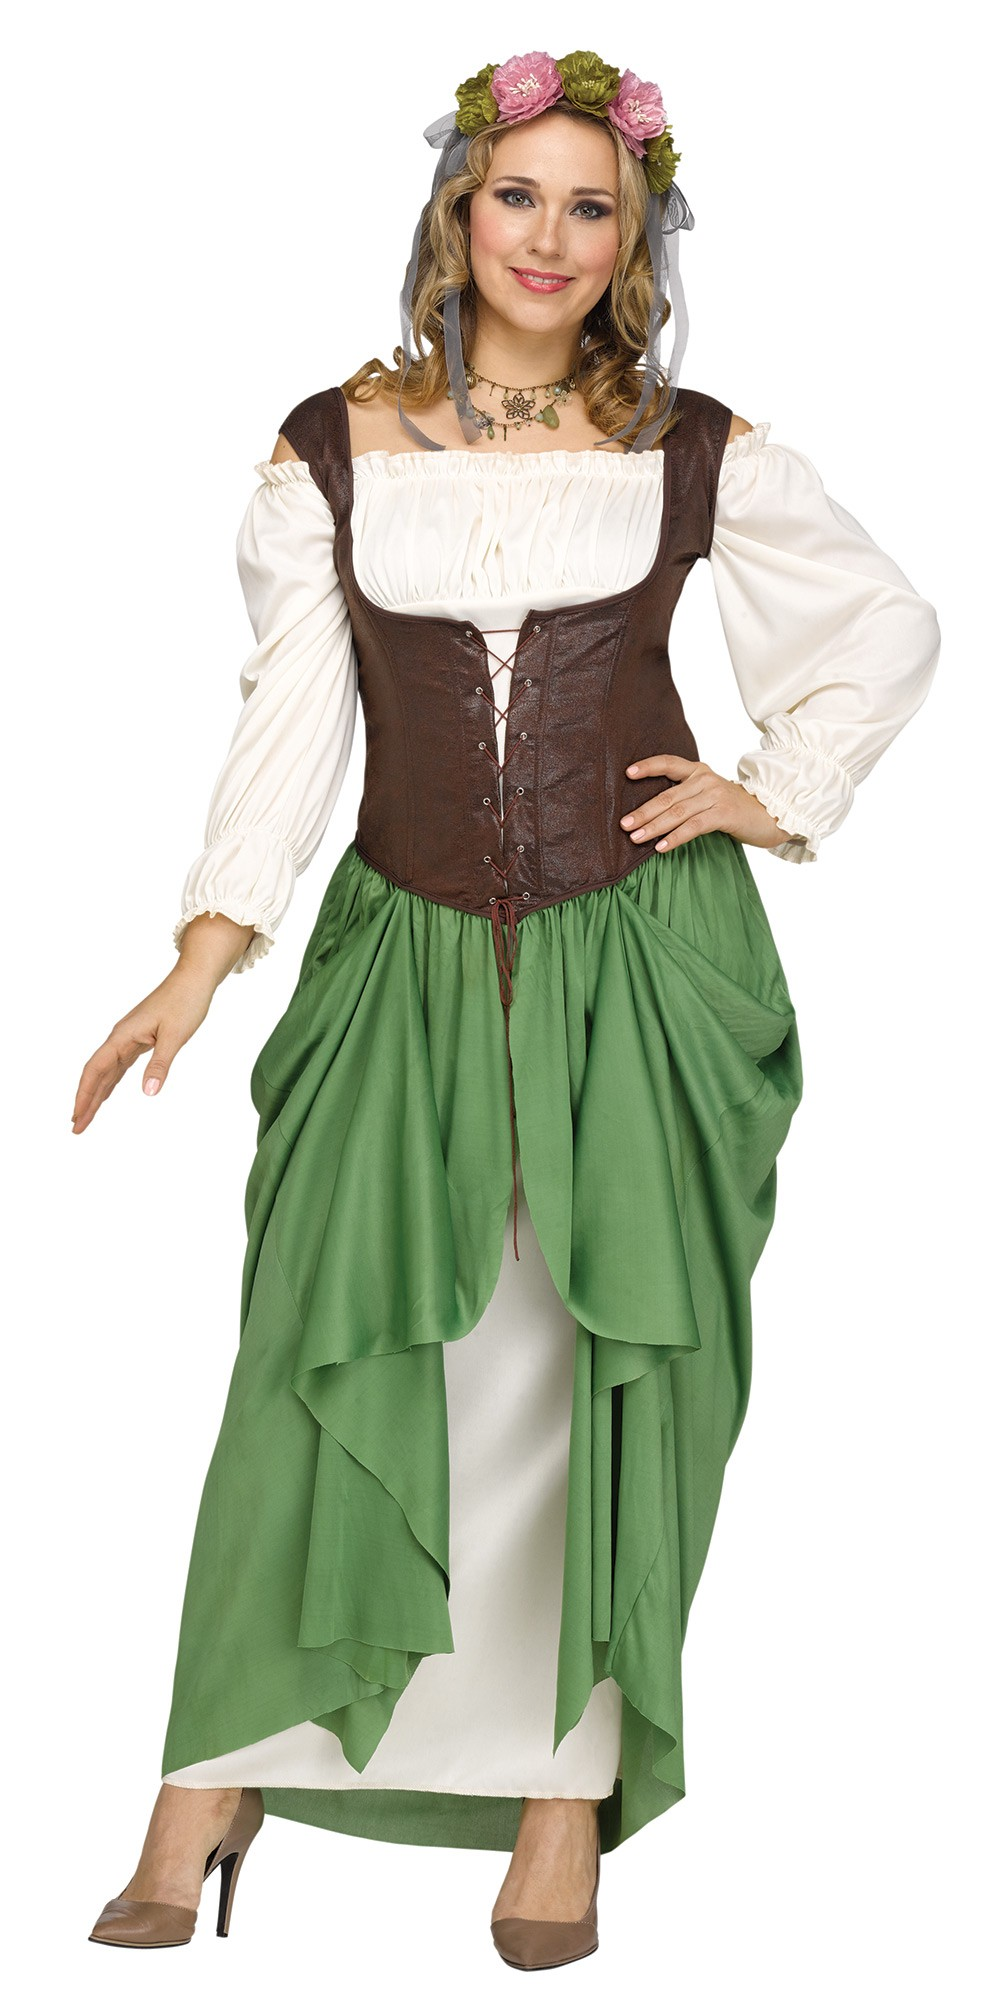 2nd Hand Bar Wench Costume Sold As Is